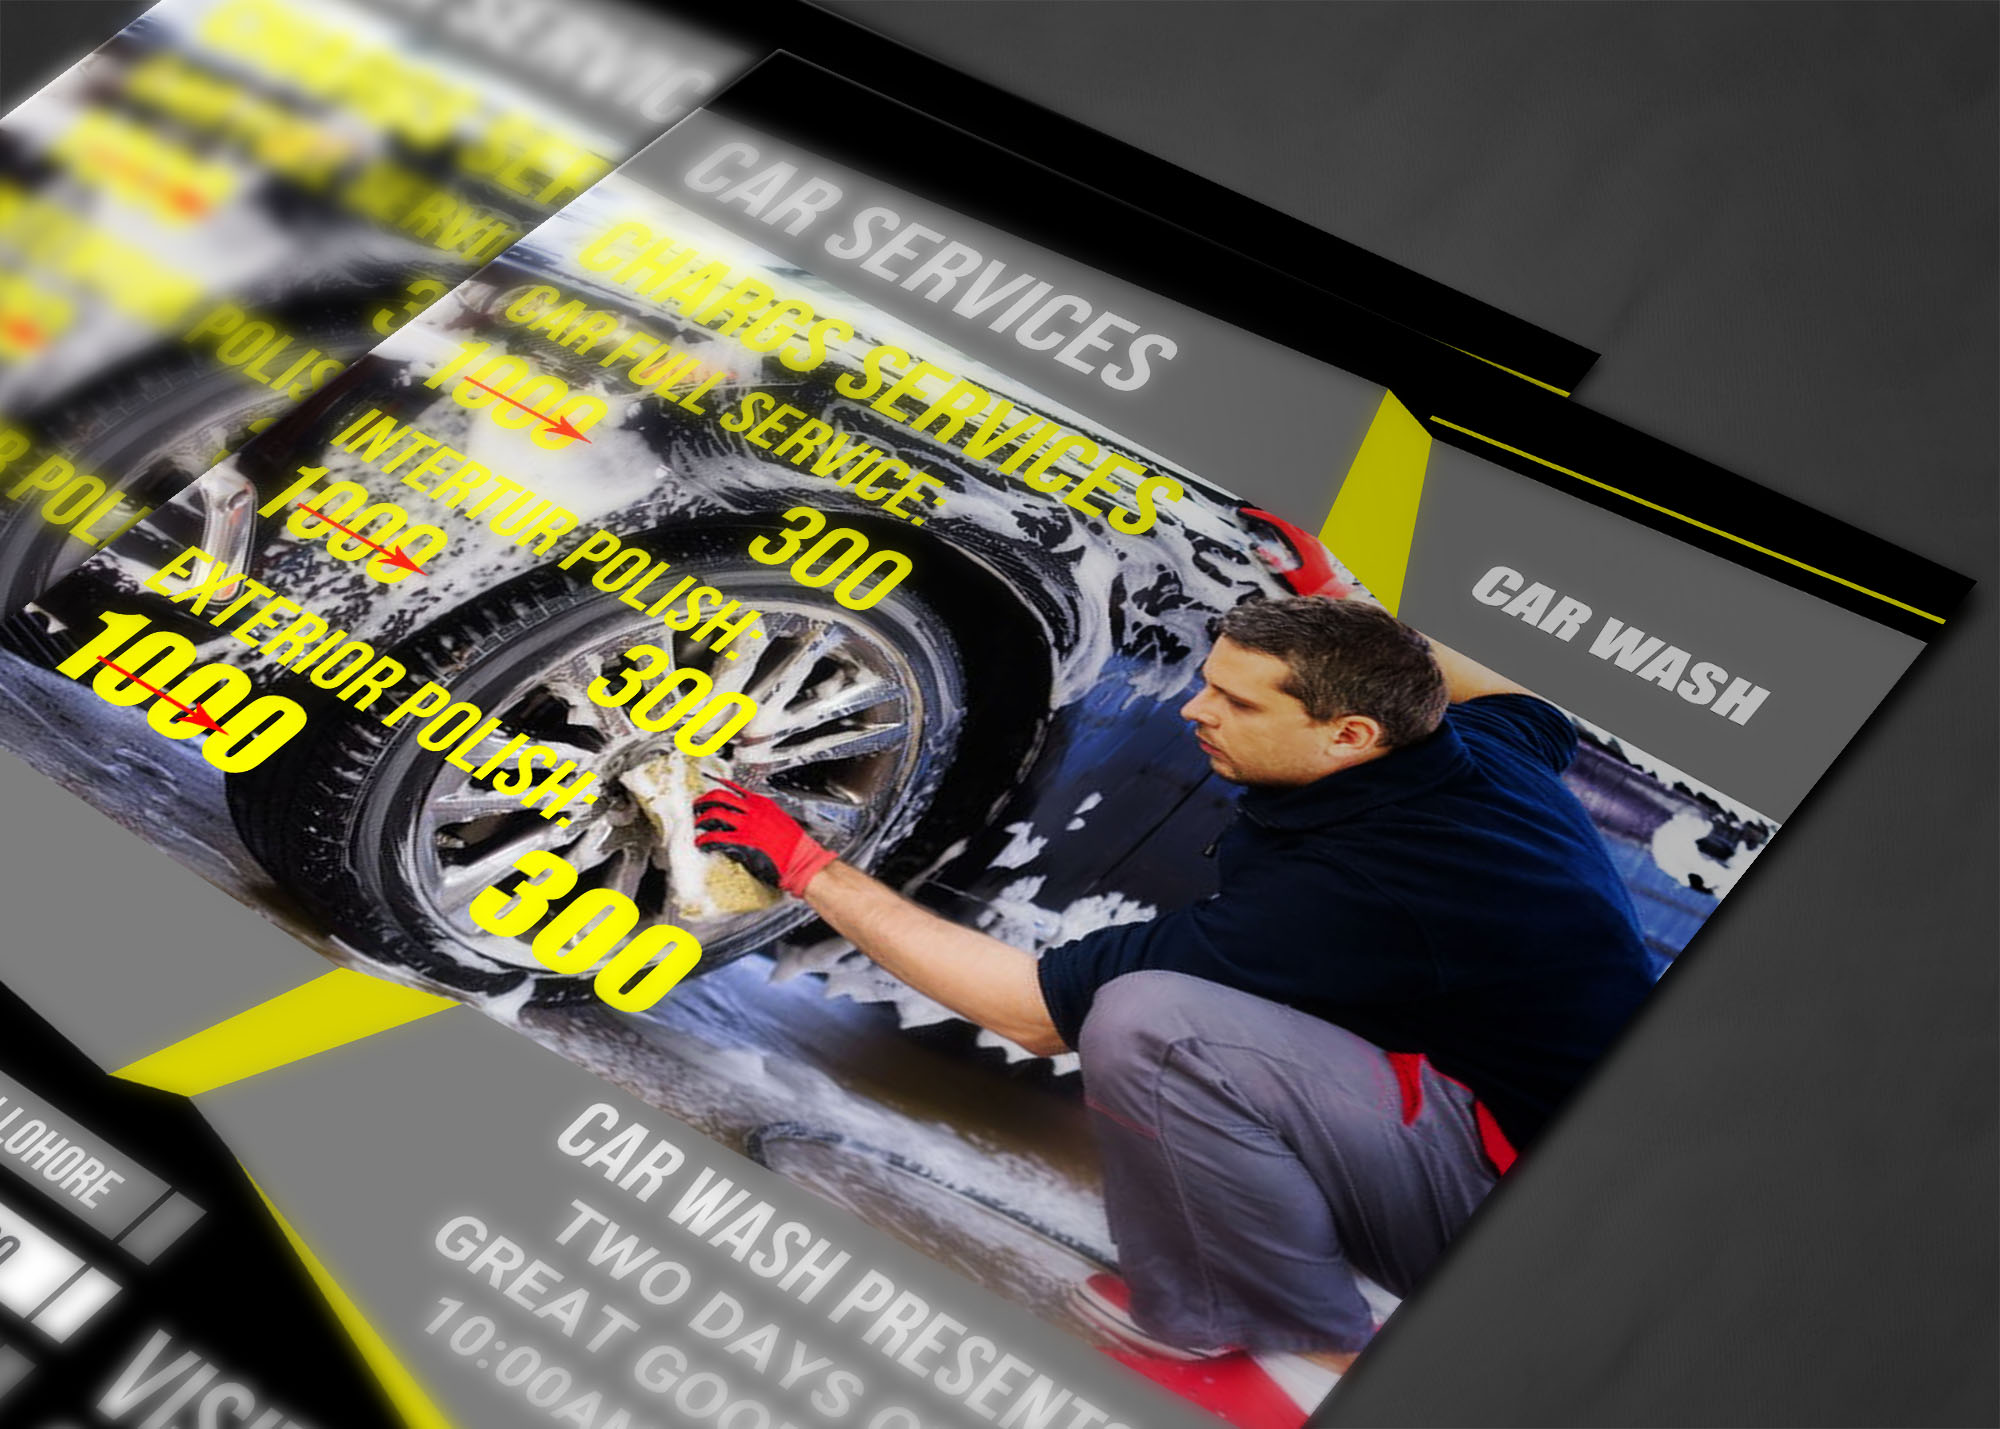 CAR SERVICES FLYER example image 4